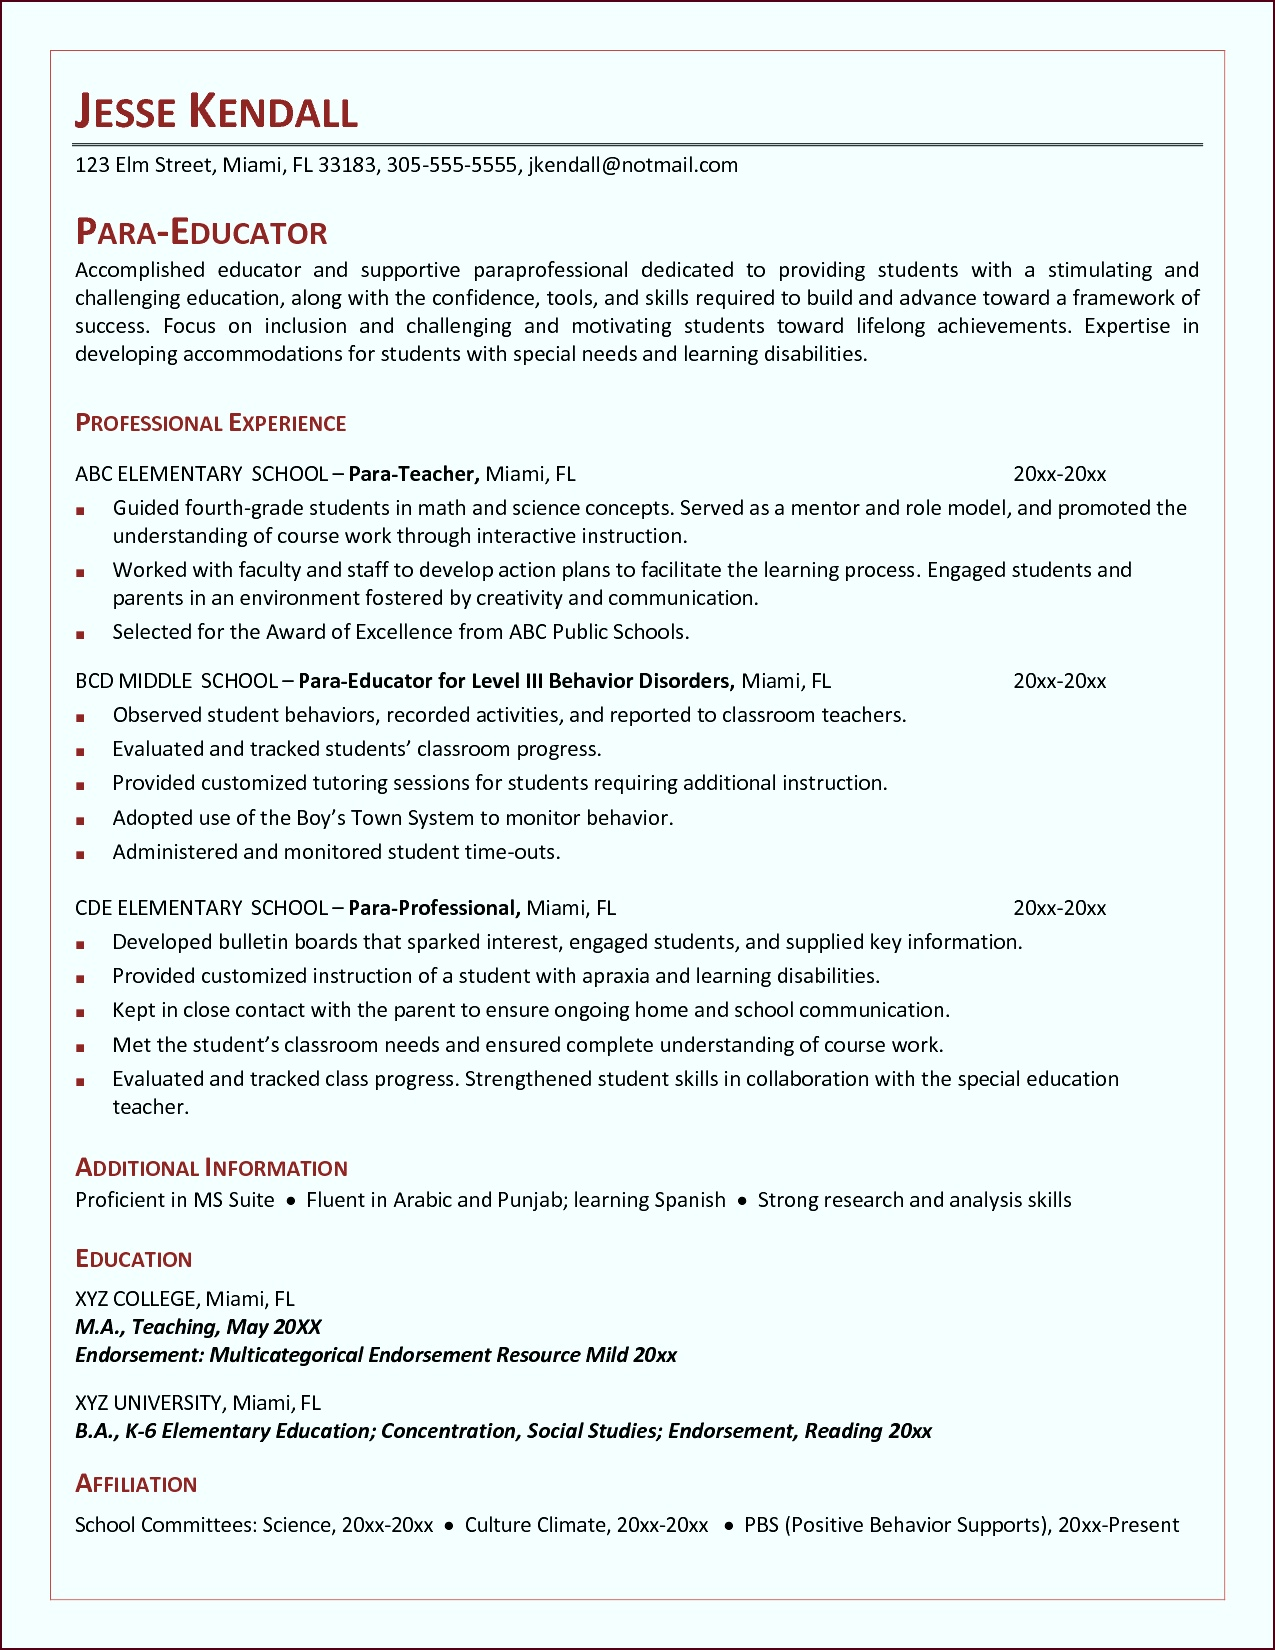 cover letter for teachers aide Impressive Design Ideas Paraprofessional Resume 14 Teacher Aide tratt